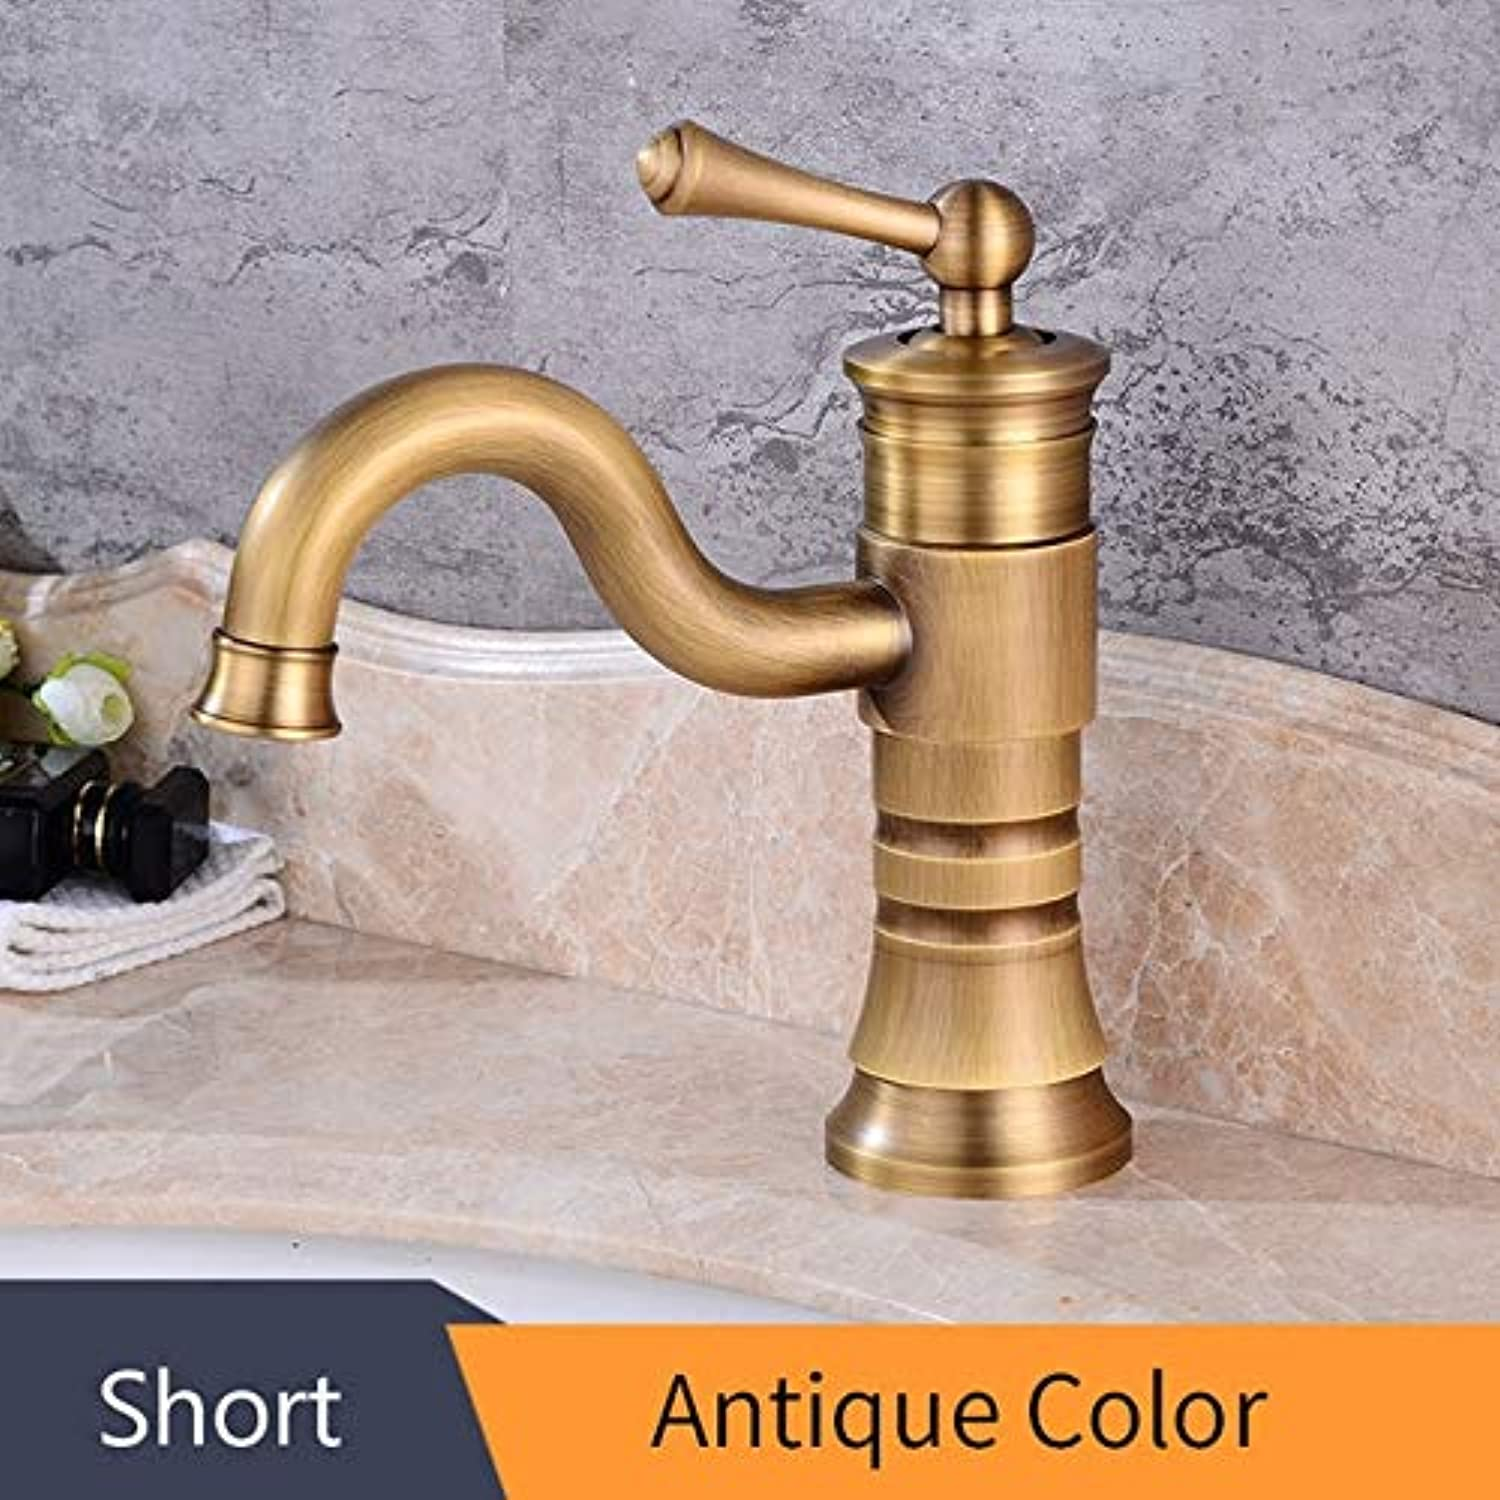 U-Enjoy Chandelier Faucets Antique Basin Brass Bathroom Top Quality with Faucet Single Handle Vintage Mount Torneiras Hot Deck Cold Bath Mixer Water Tap Free Shipping [Short Antique]